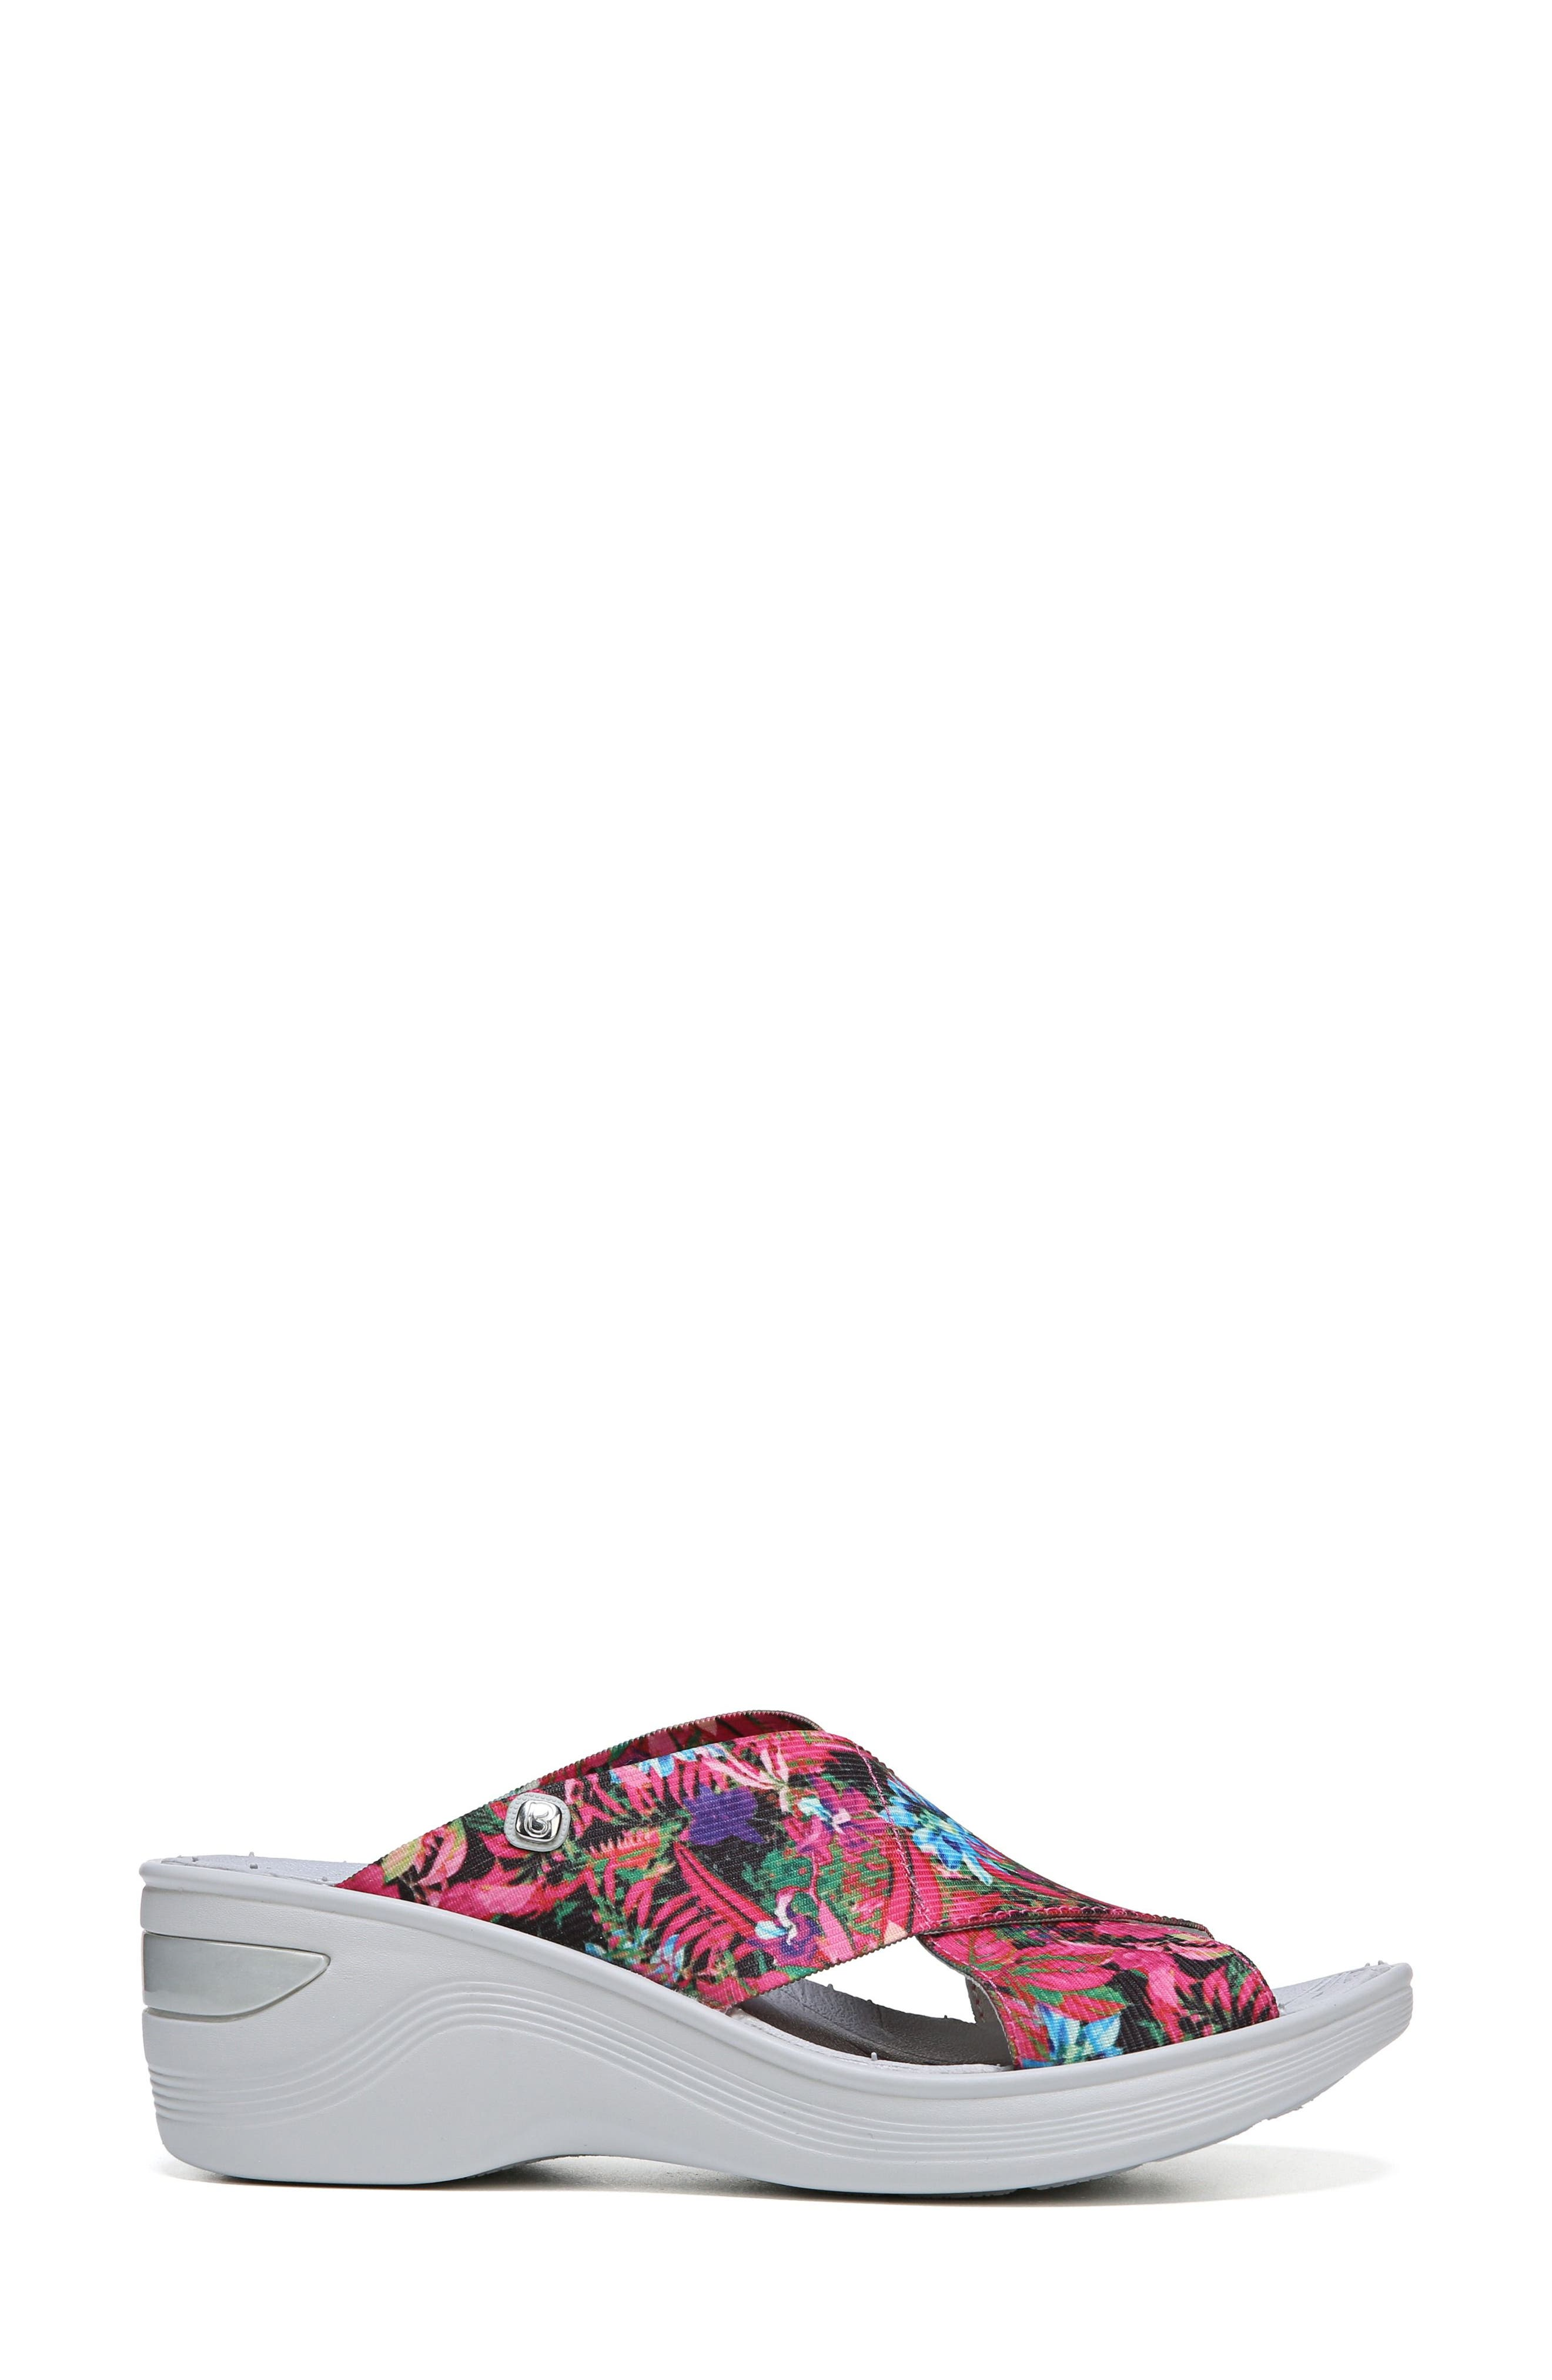 'Desire' Wedge Sandal,                             Alternate thumbnail 3, color,                             Pink Floral Fabric